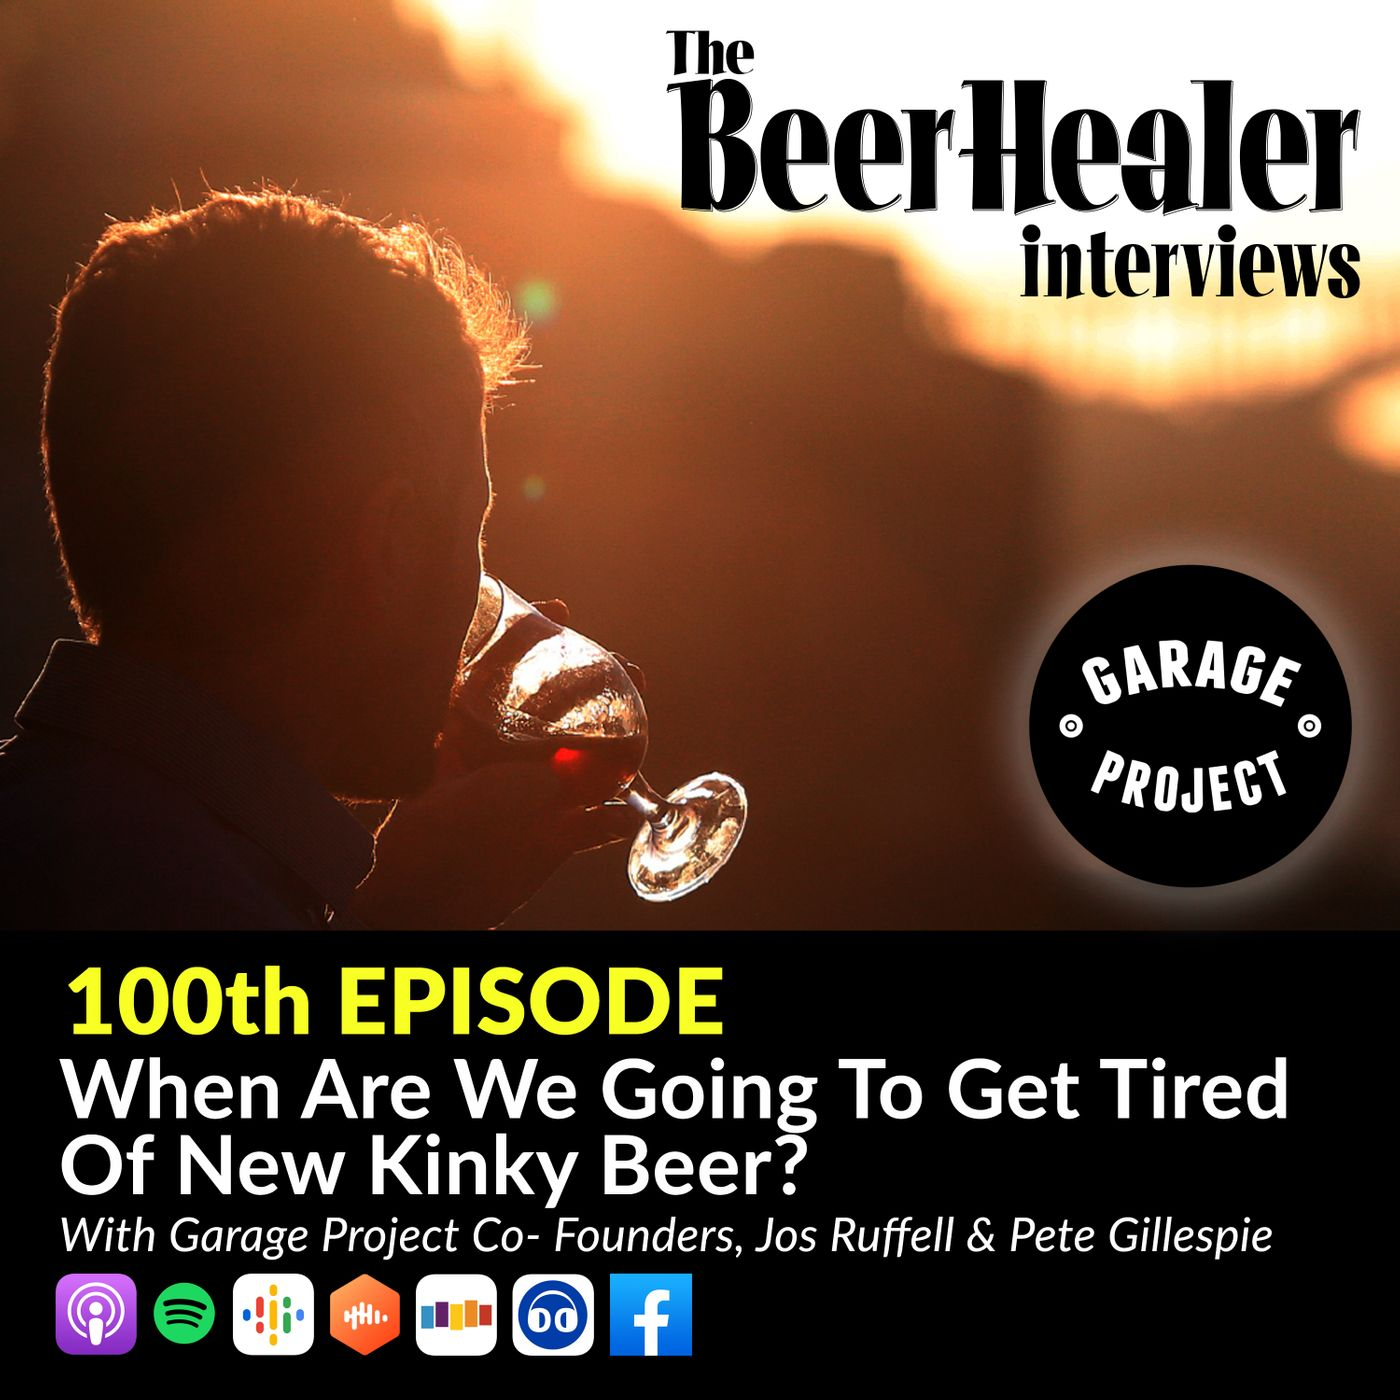 Ep. 100 - When Are We Going To Get Tired Of New Kinky Beer? With Garage Project Co-Founders, Jos Ruffell & Pete Gillespie.